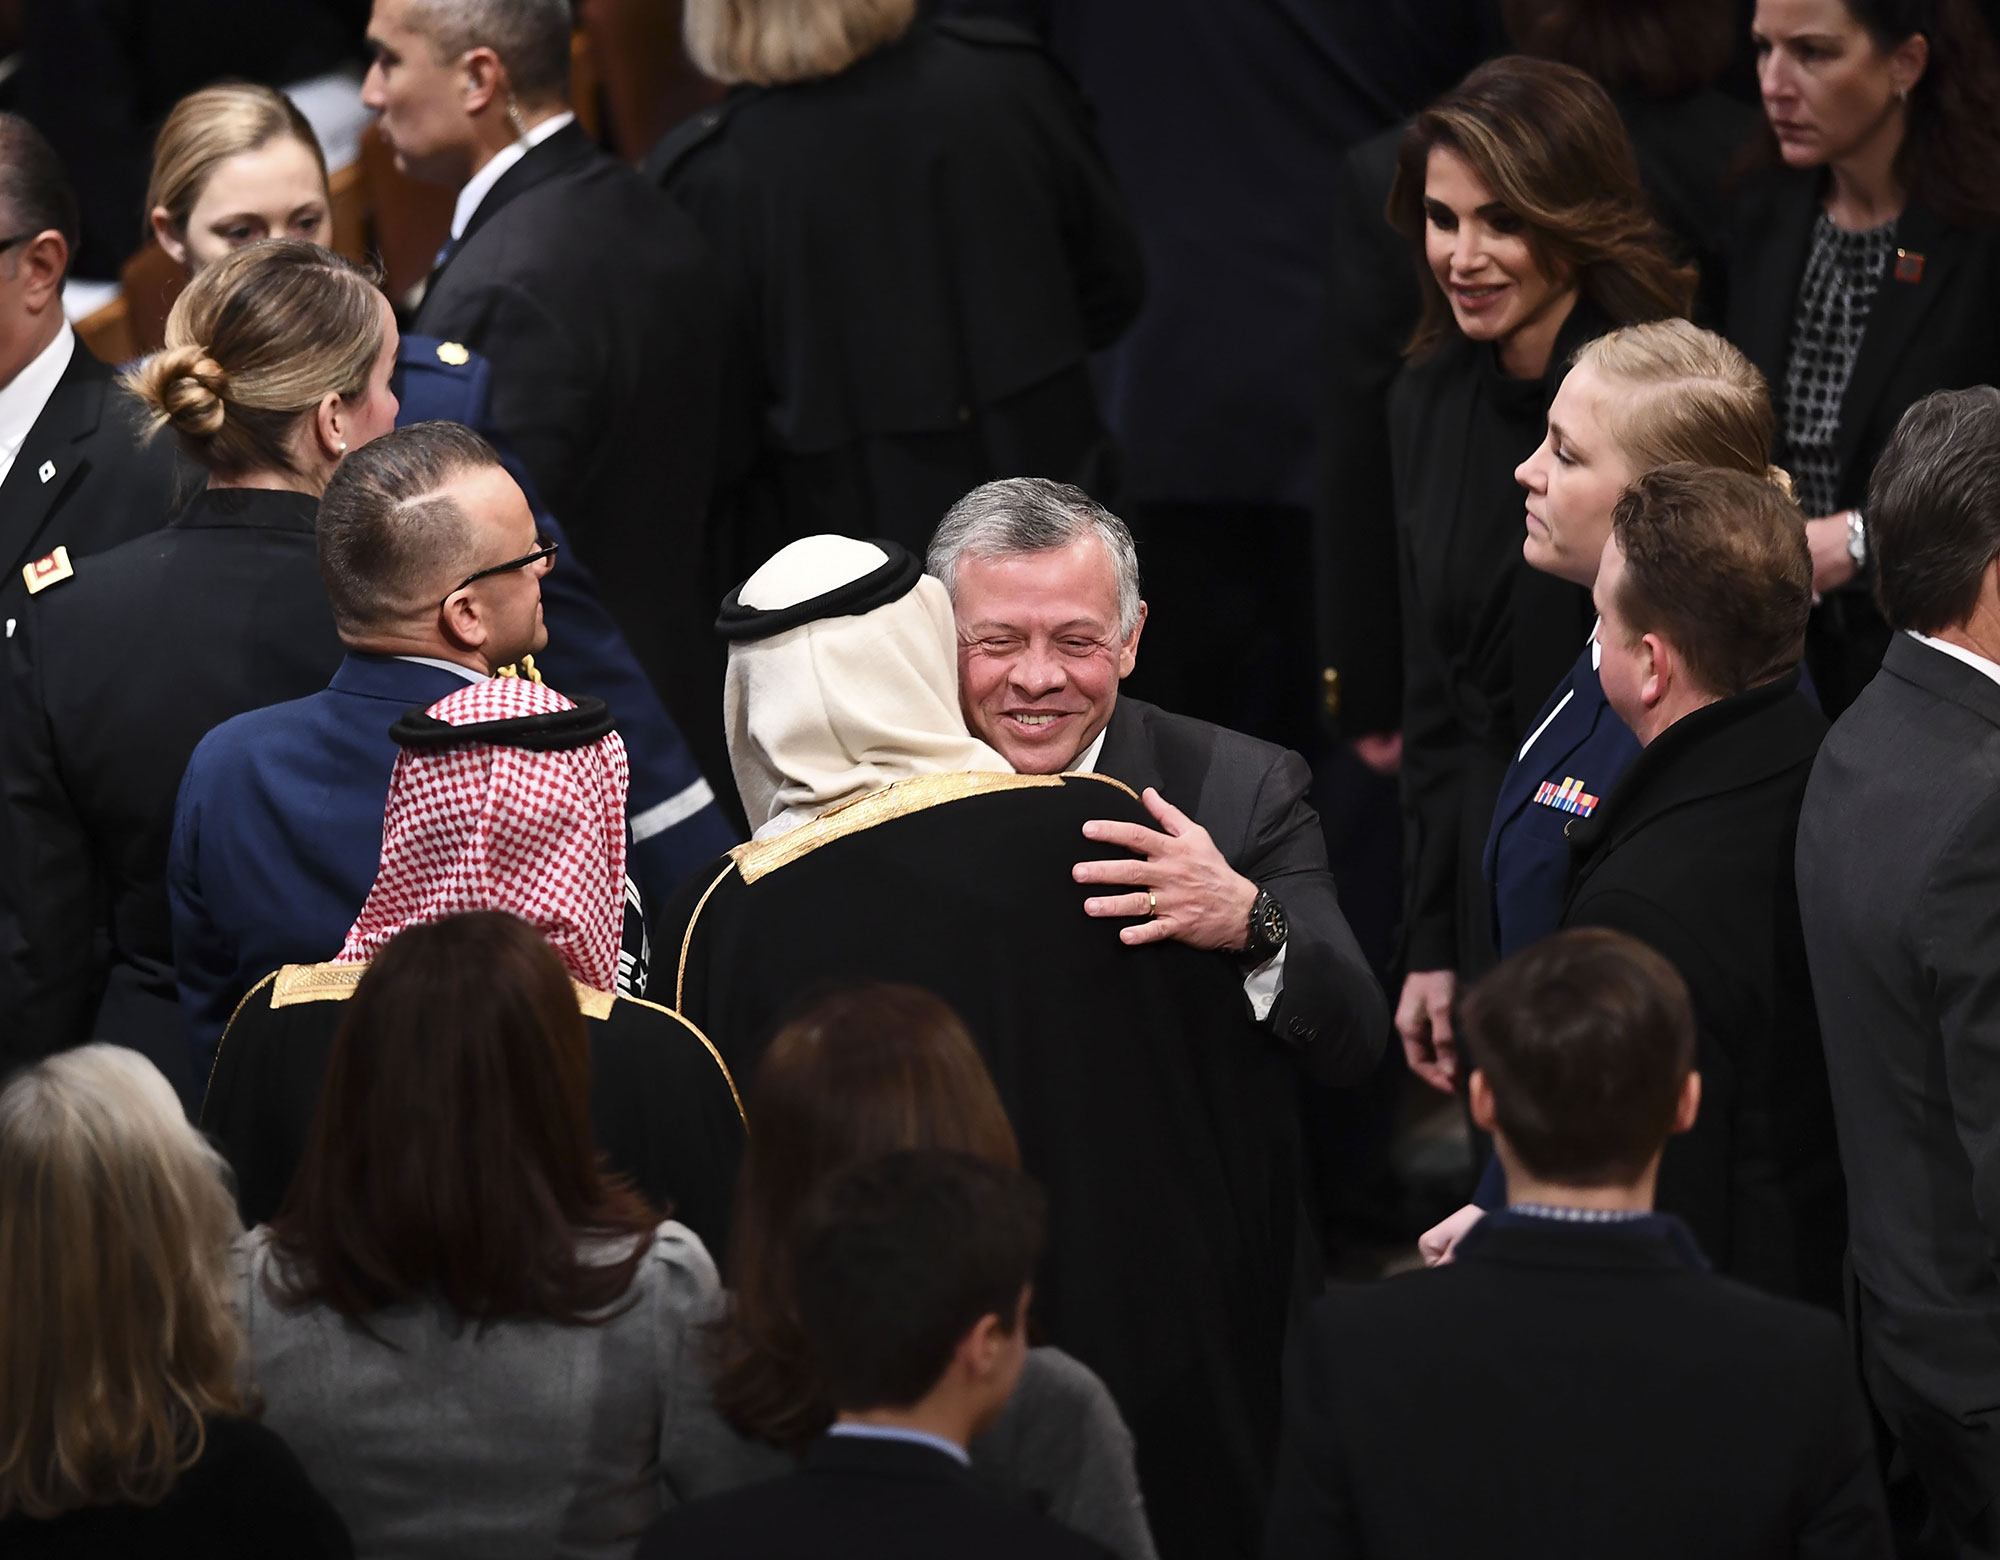 george bush funeral - The King and Queen of Jordan traveled to Washington for the occasion.